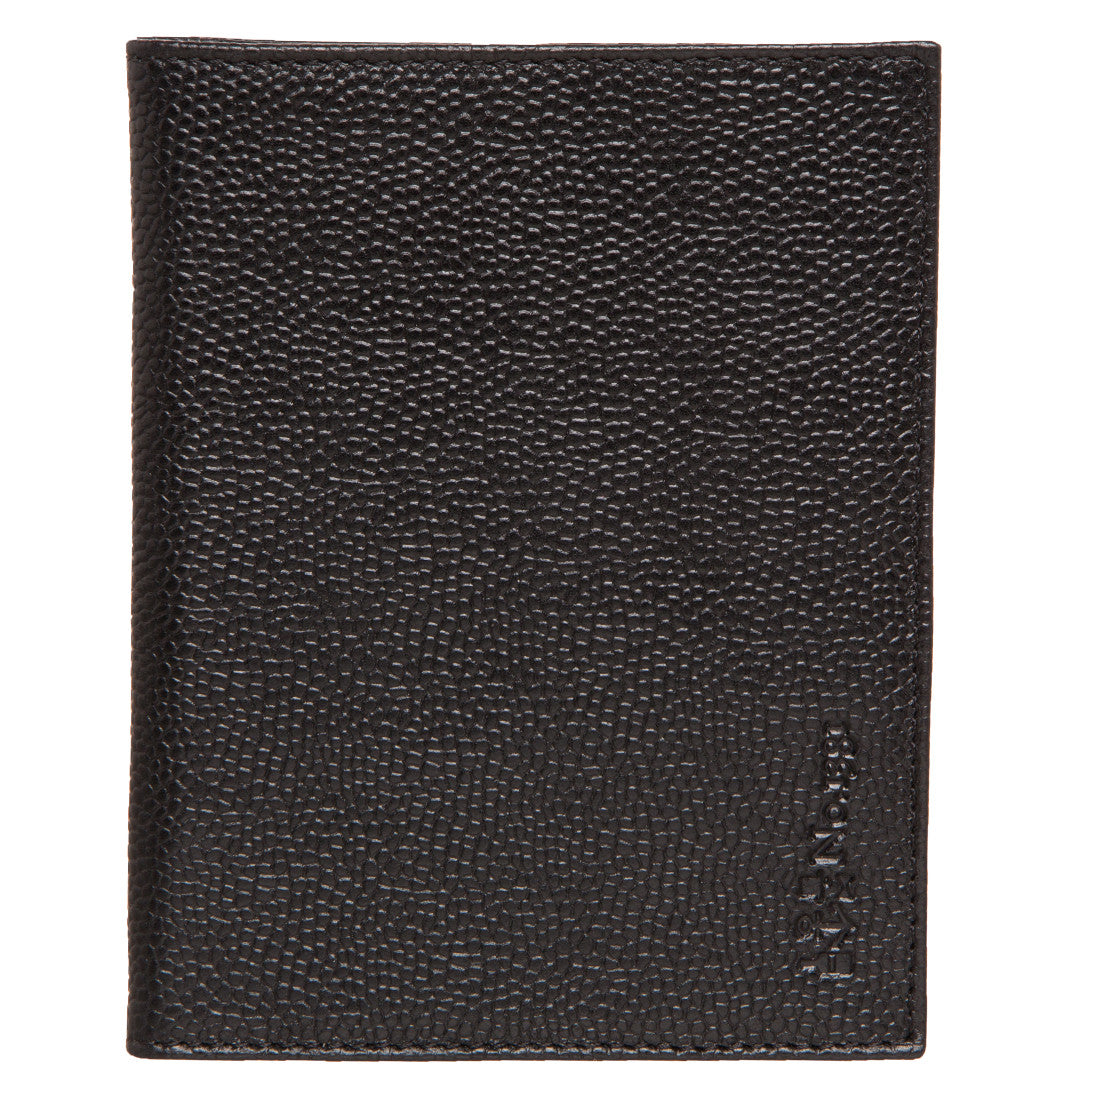 Travel Wallet - Panther